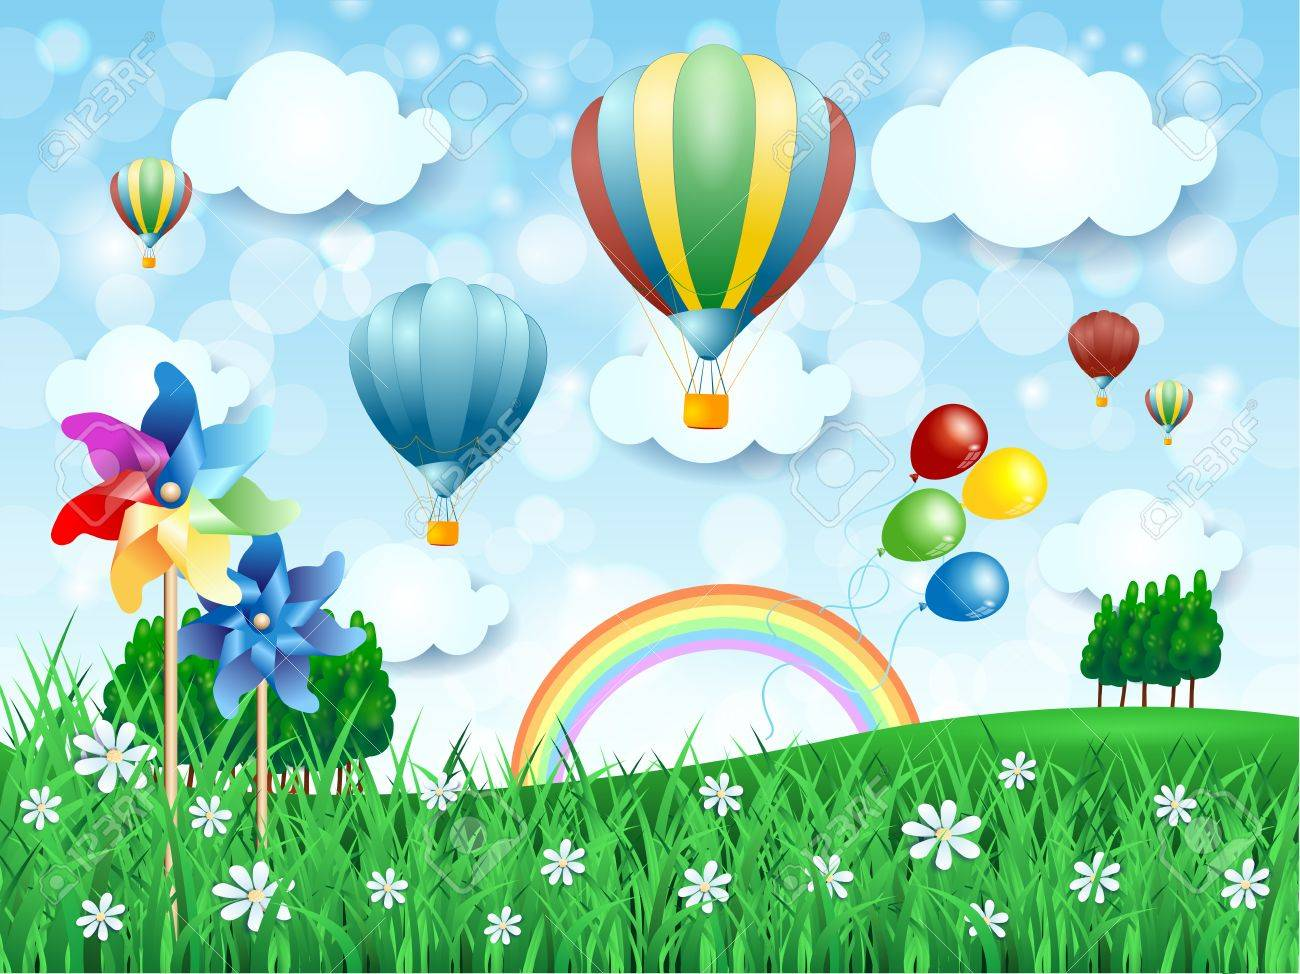 Spring landscape with hot air balloons, vector illustration eps10 - 40273965